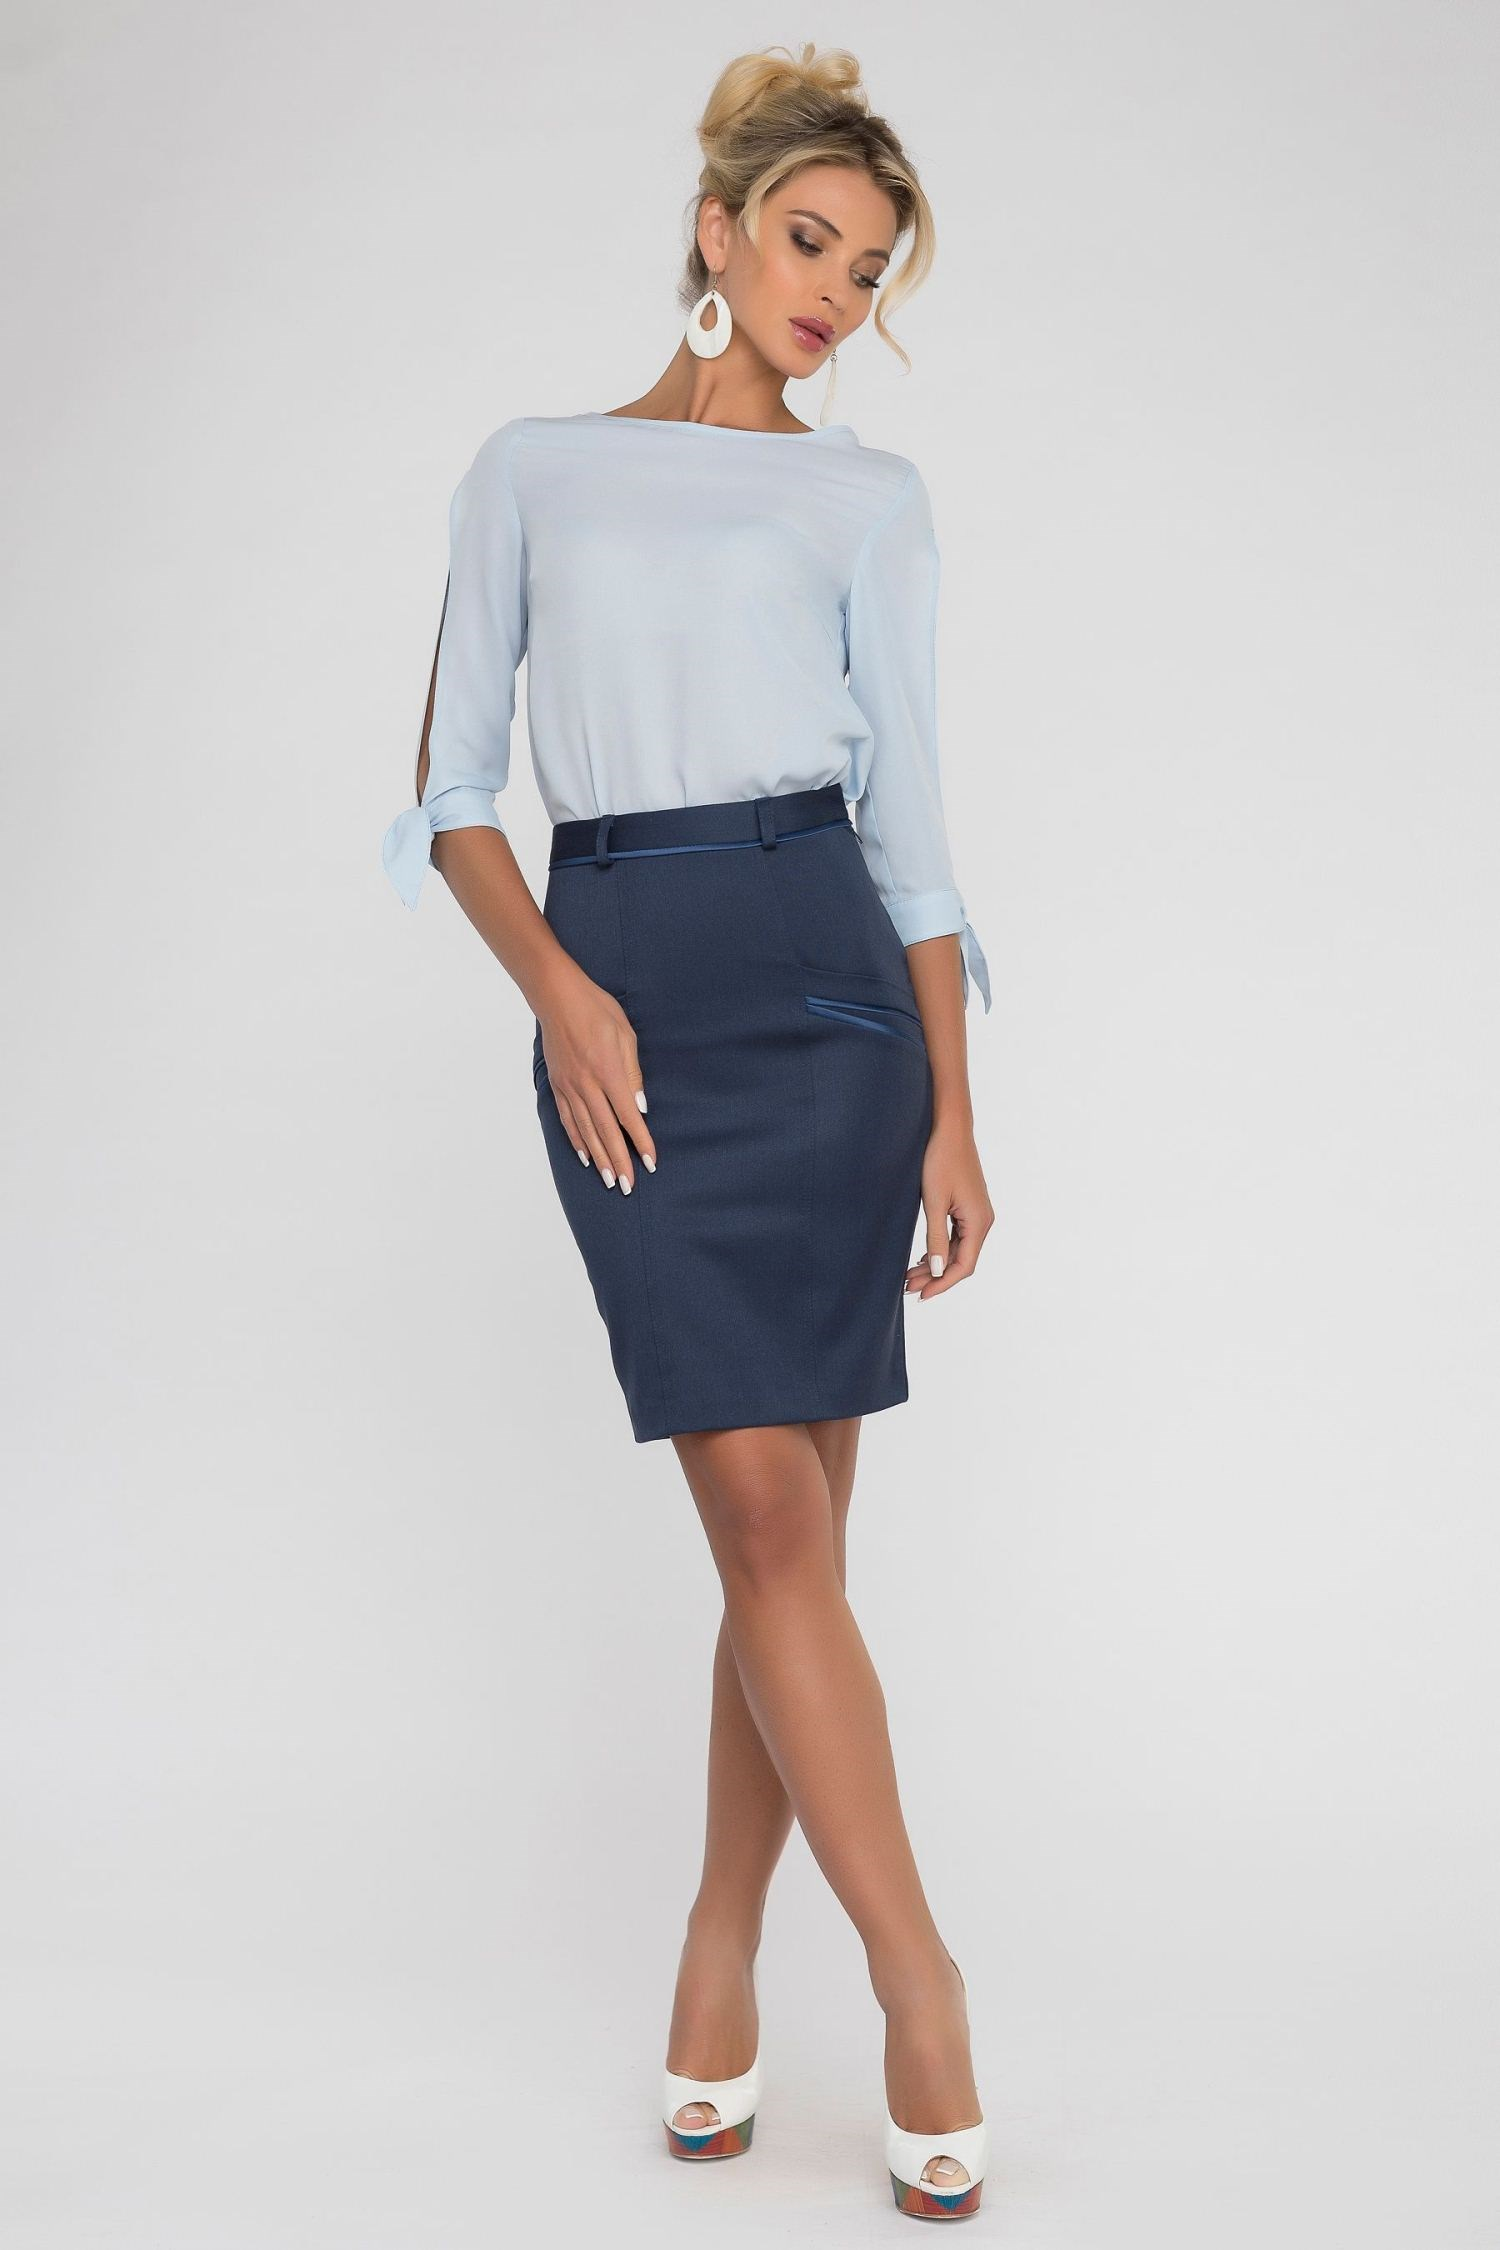 Pencil skirt with contrast pockets. tie waist plaid pencil skirt